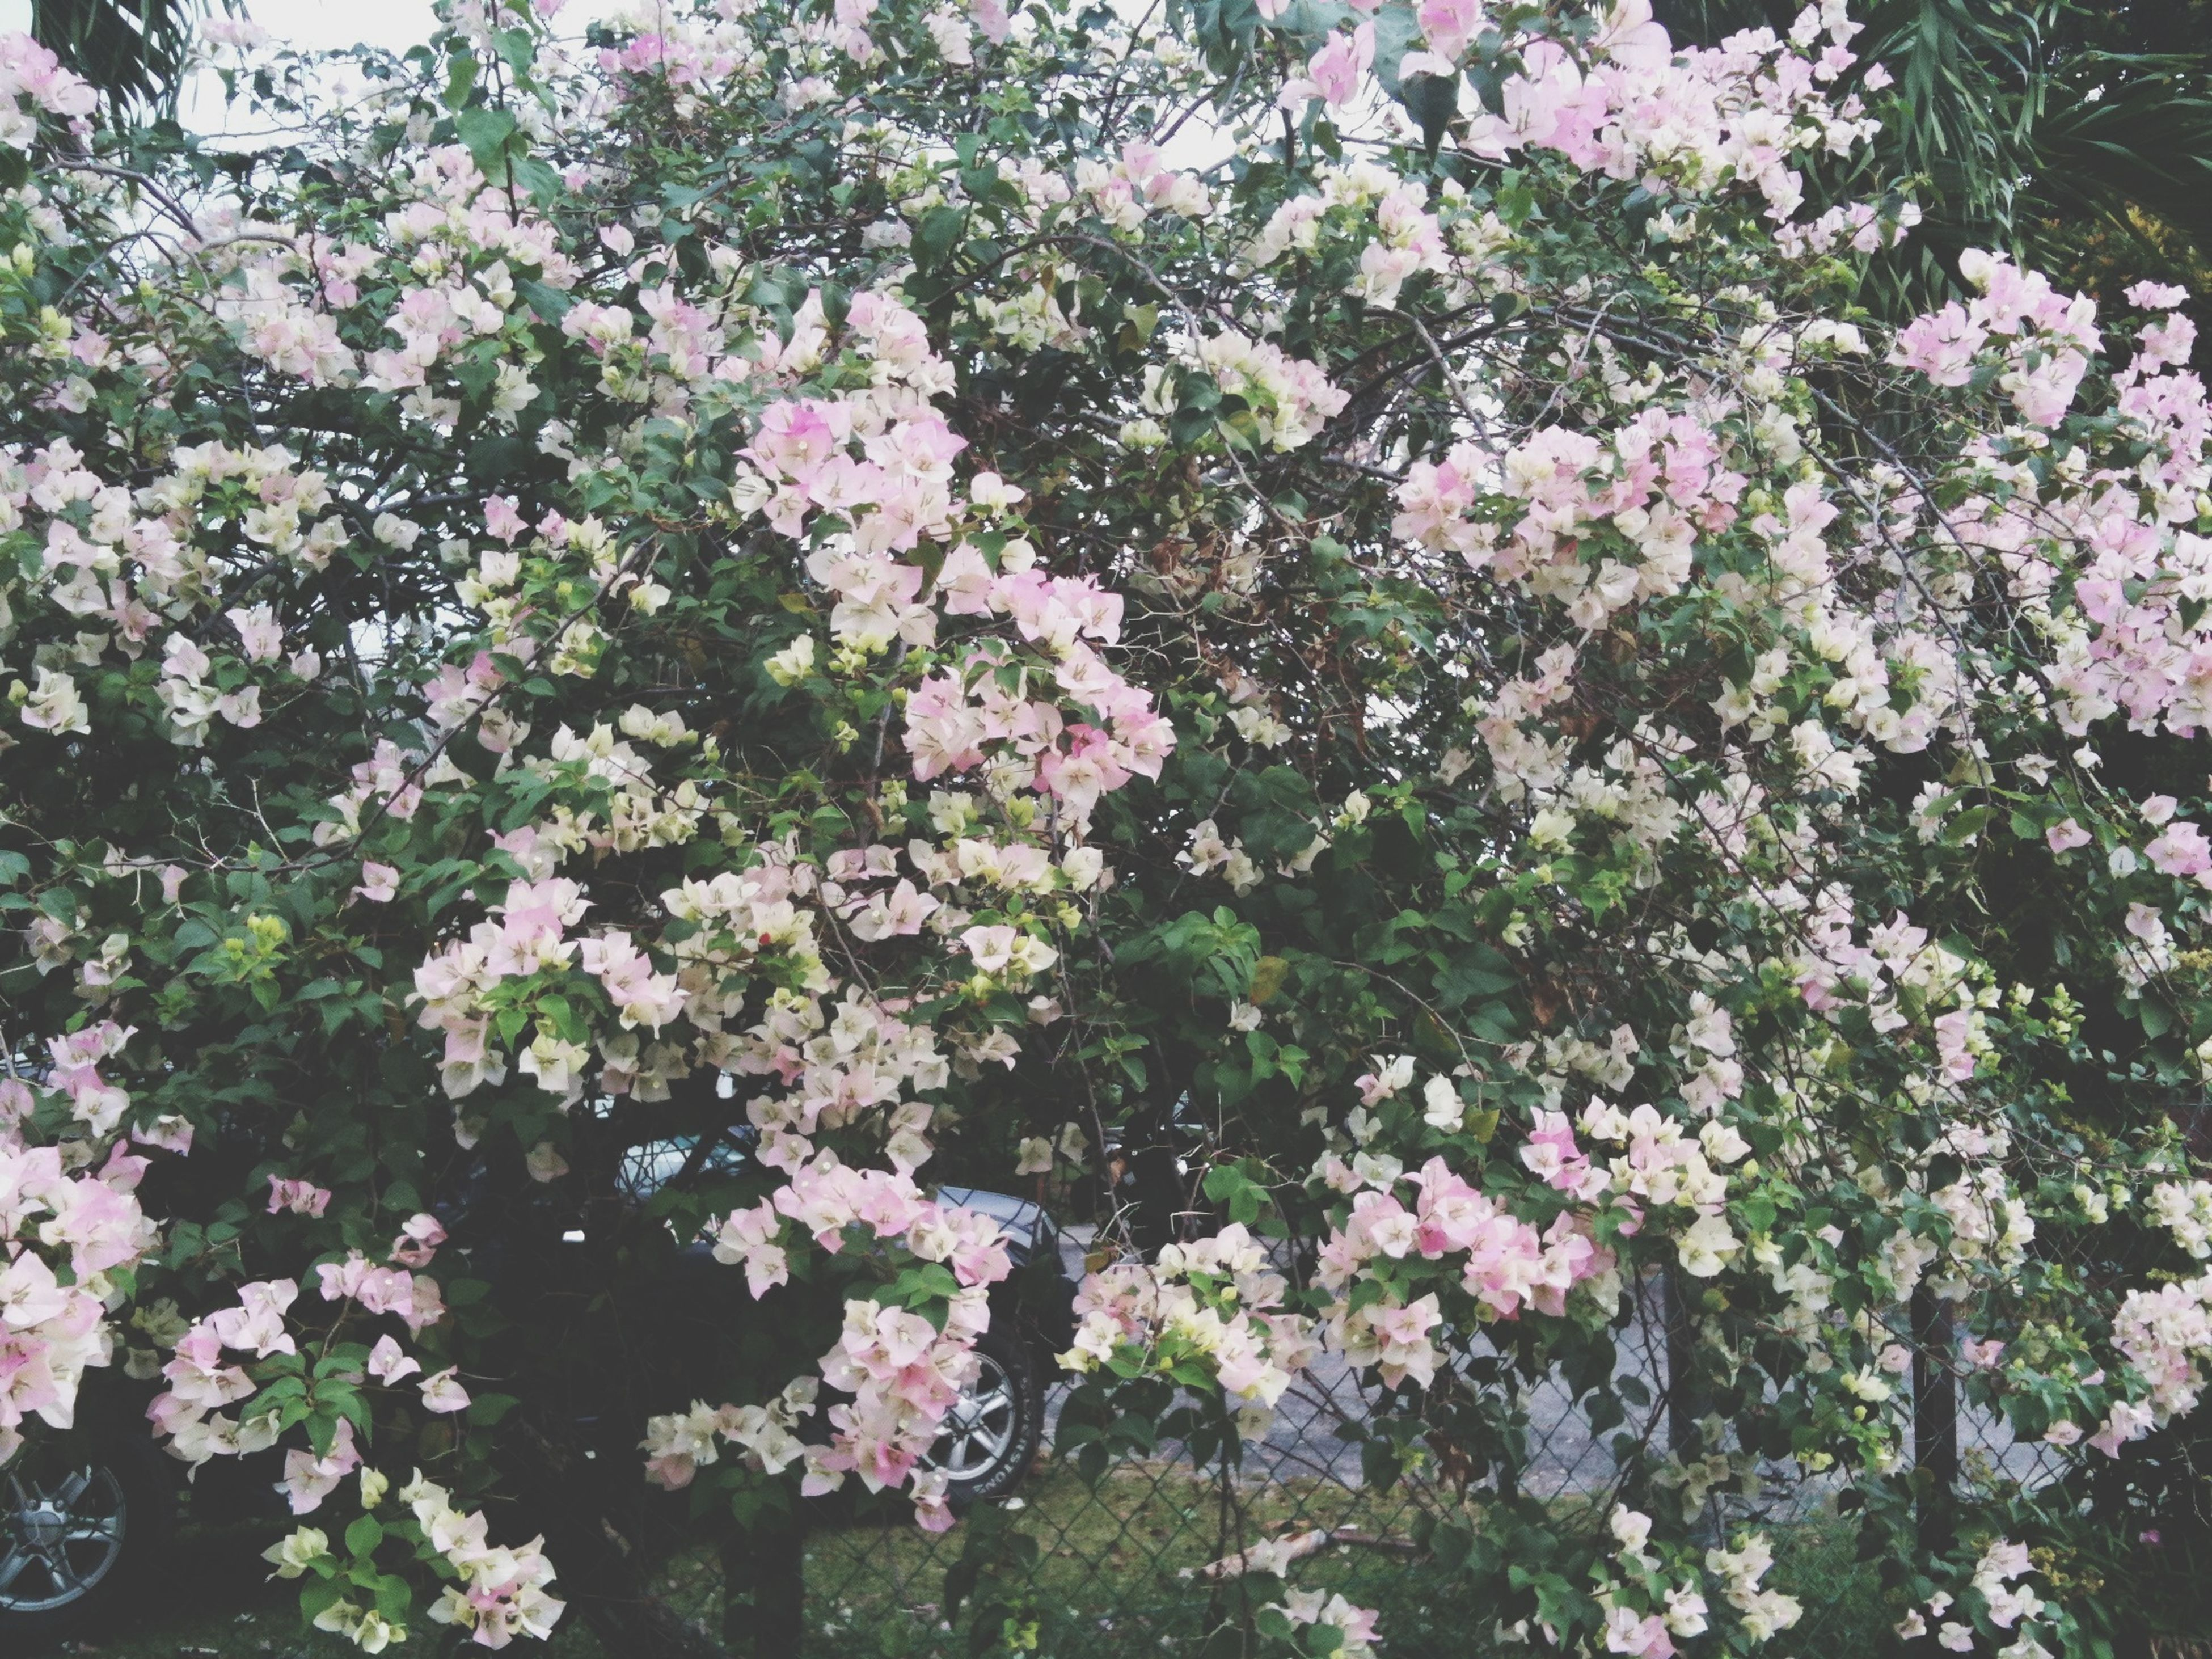 flower, freshness, growth, fragility, beauty in nature, petal, blooming, nature, plant, pink color, in bloom, blossom, tree, flower head, springtime, park - man made space, outdoors, day, leaf, no people